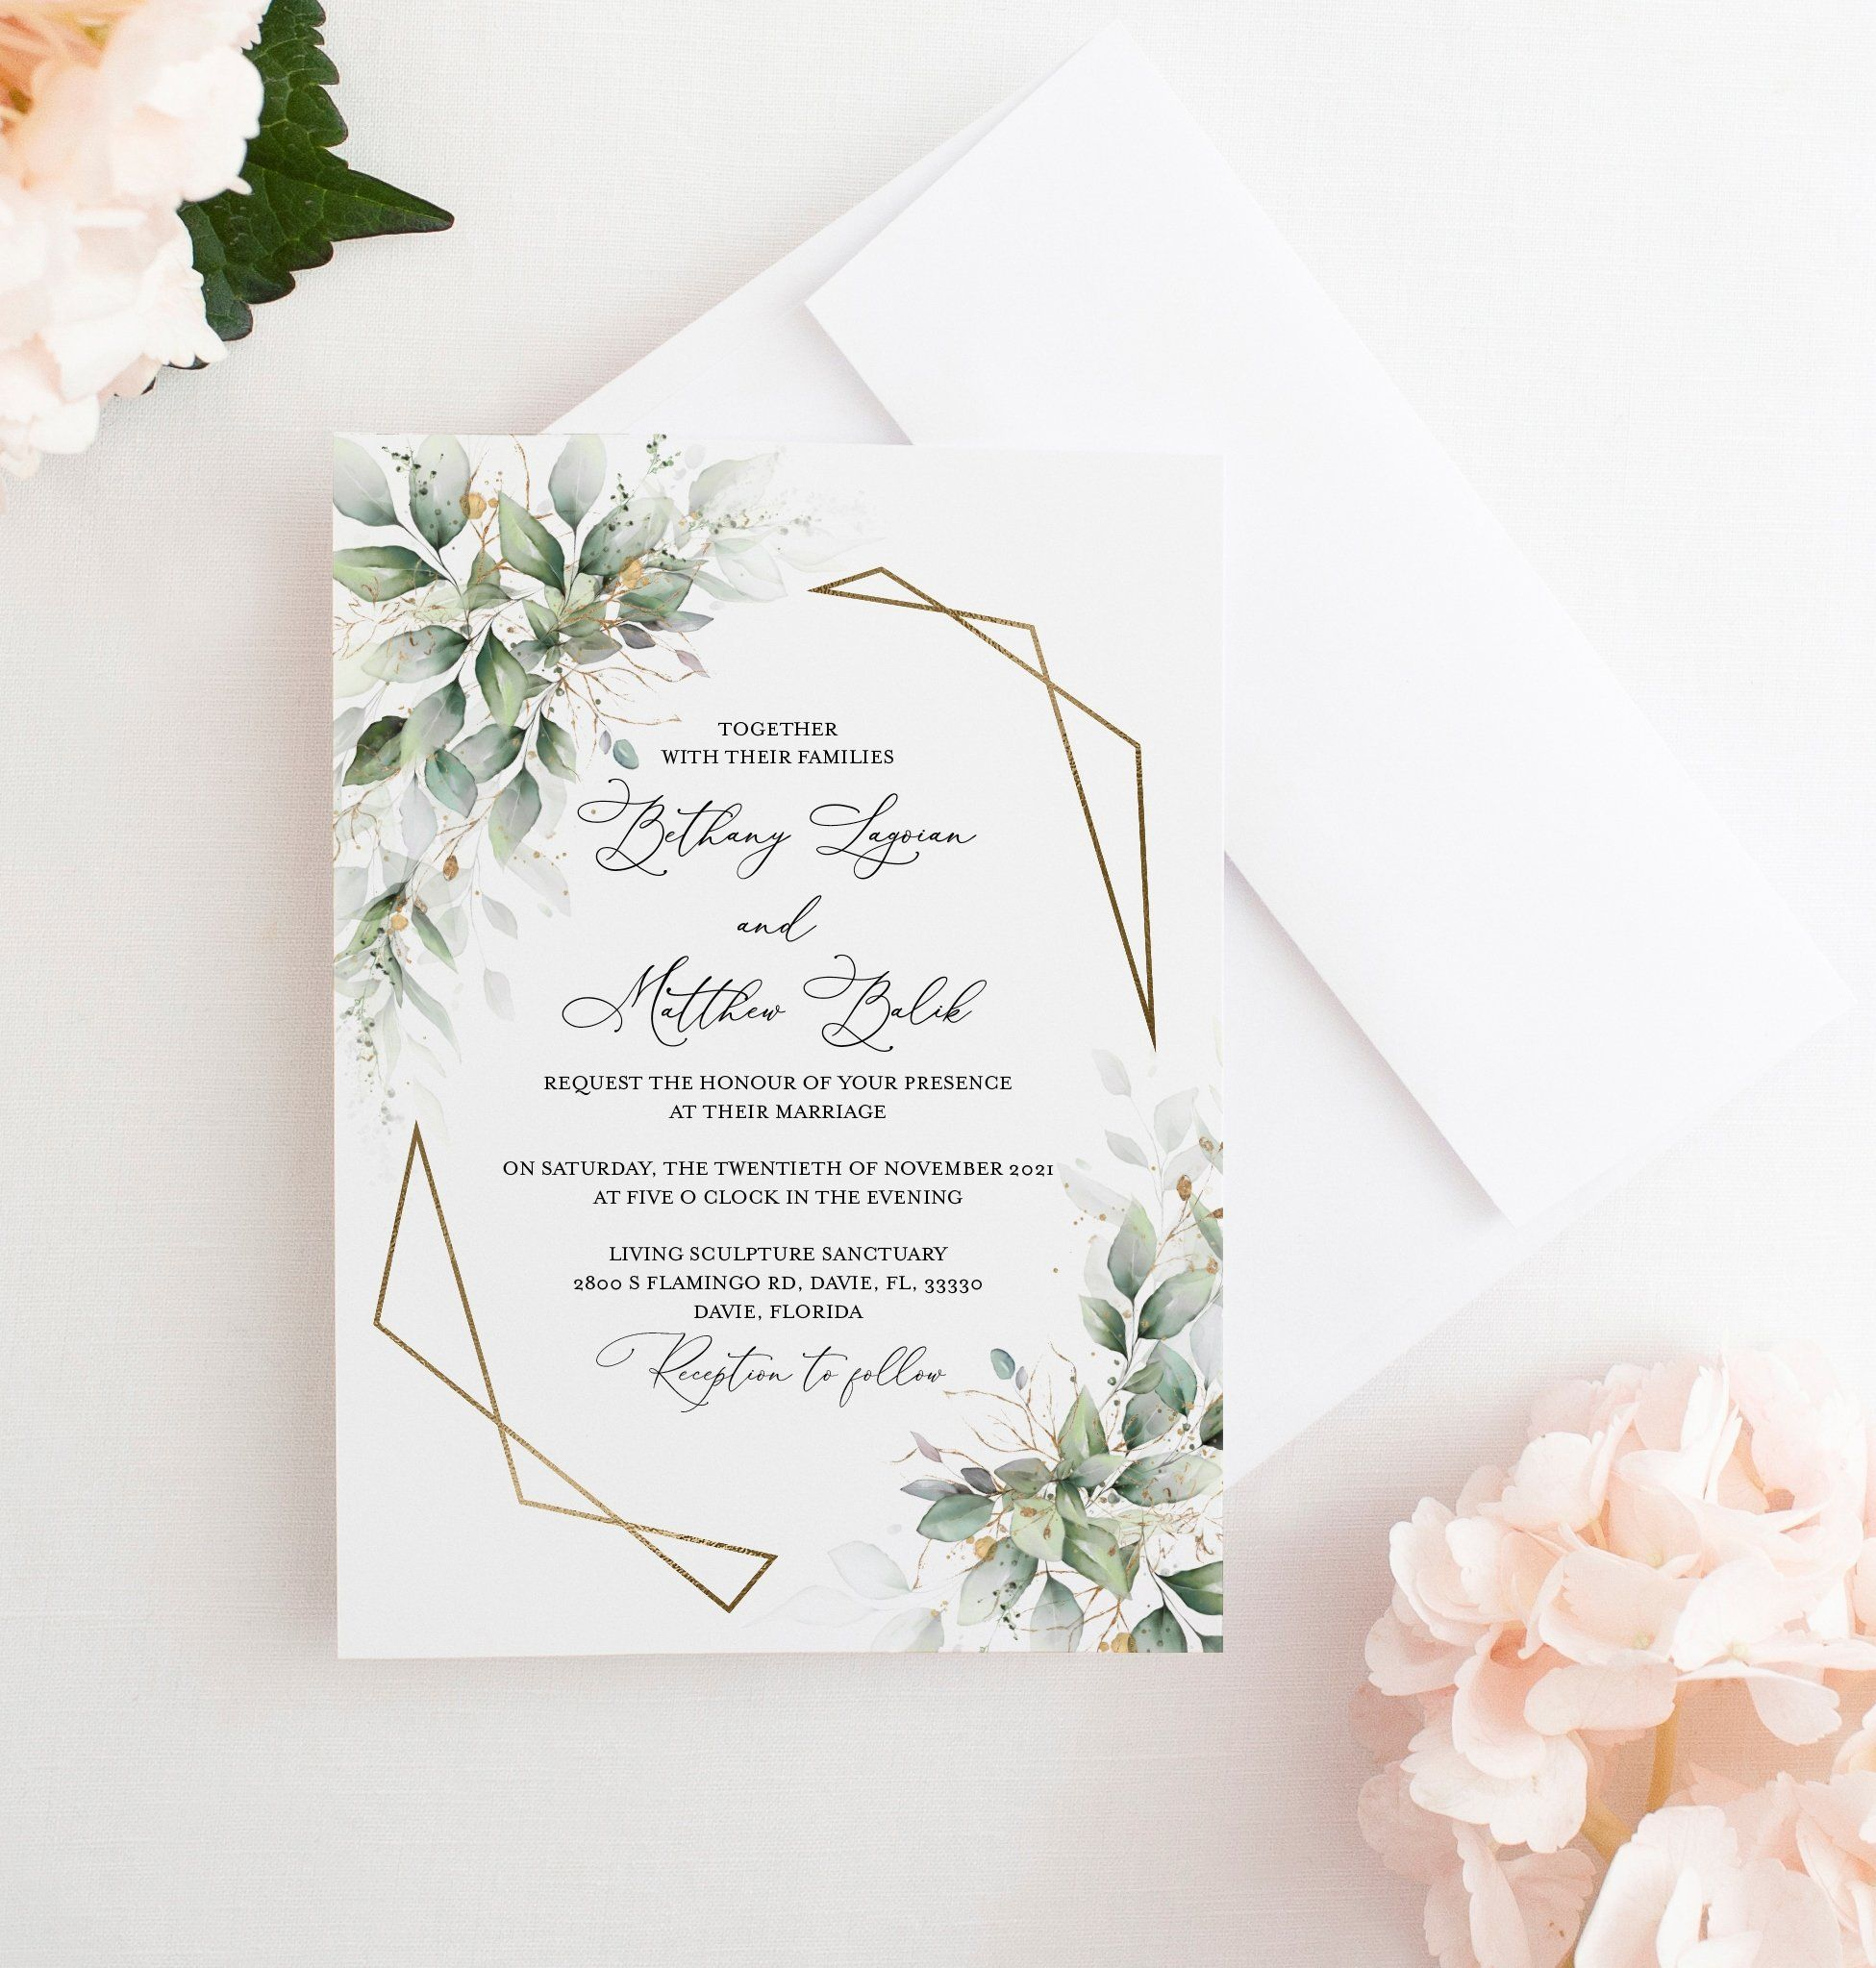 Greenery Wedding Invitation Printed Gold Geometric Frame With Green Le In 2020 Printing Wedding Invitations Greenery Wedding Invitations Wedding Invitations